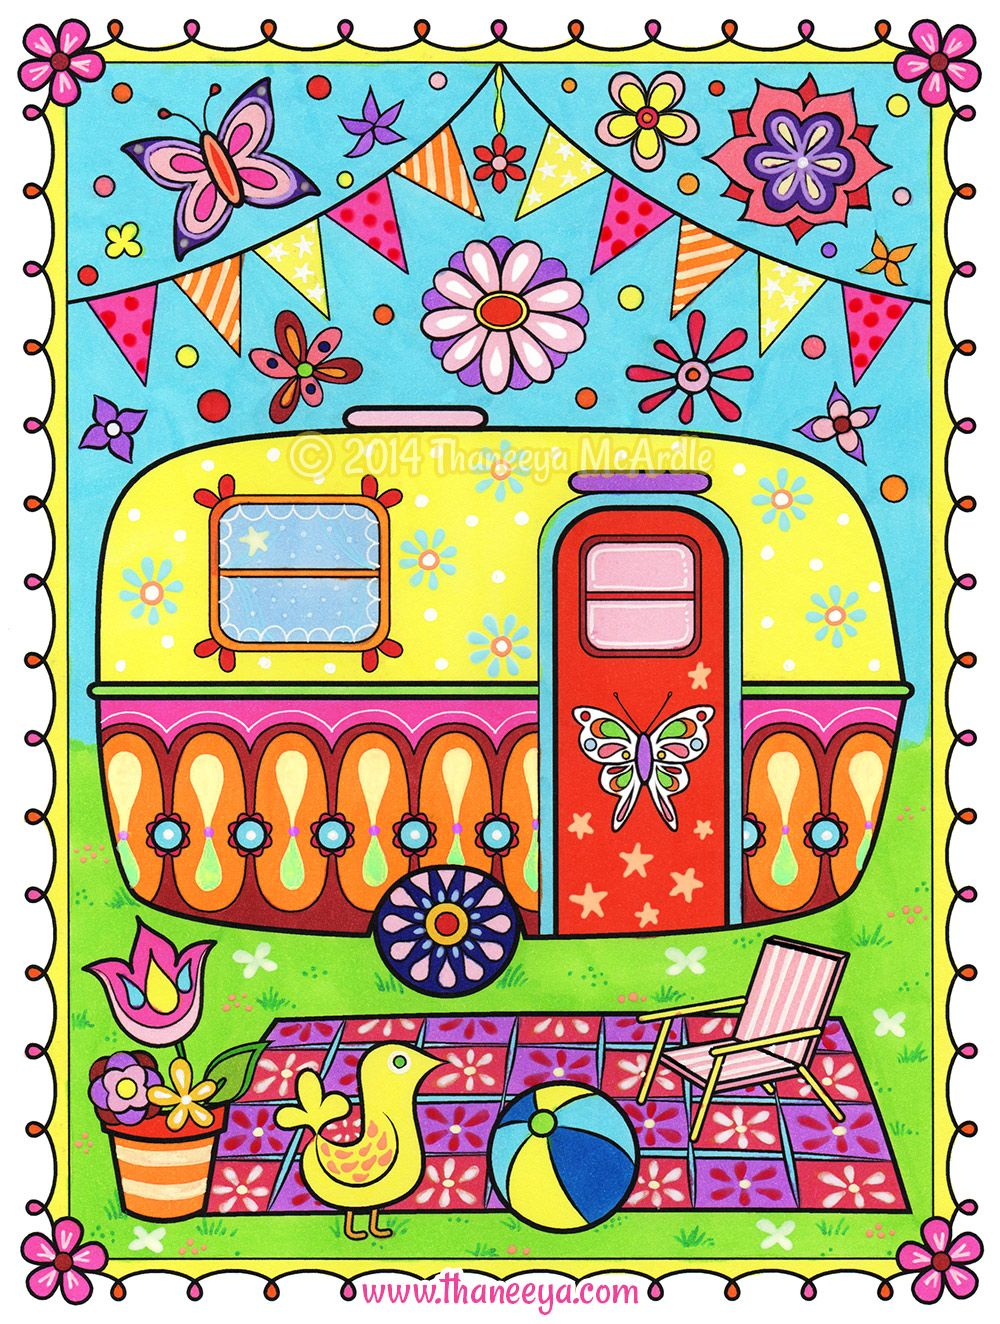 Art from Thaneeya McArdle's Happy Campers Coloring Book http://www.amazon.com/gp/product/1574219650/ref=as_li_tl?ie=UTF8&camp=1789&creative=390957&creativeASIN=1574219650&linkCode=as2&tag=arisfu-20&linkId=X2YAHRNRUFQPGFYP